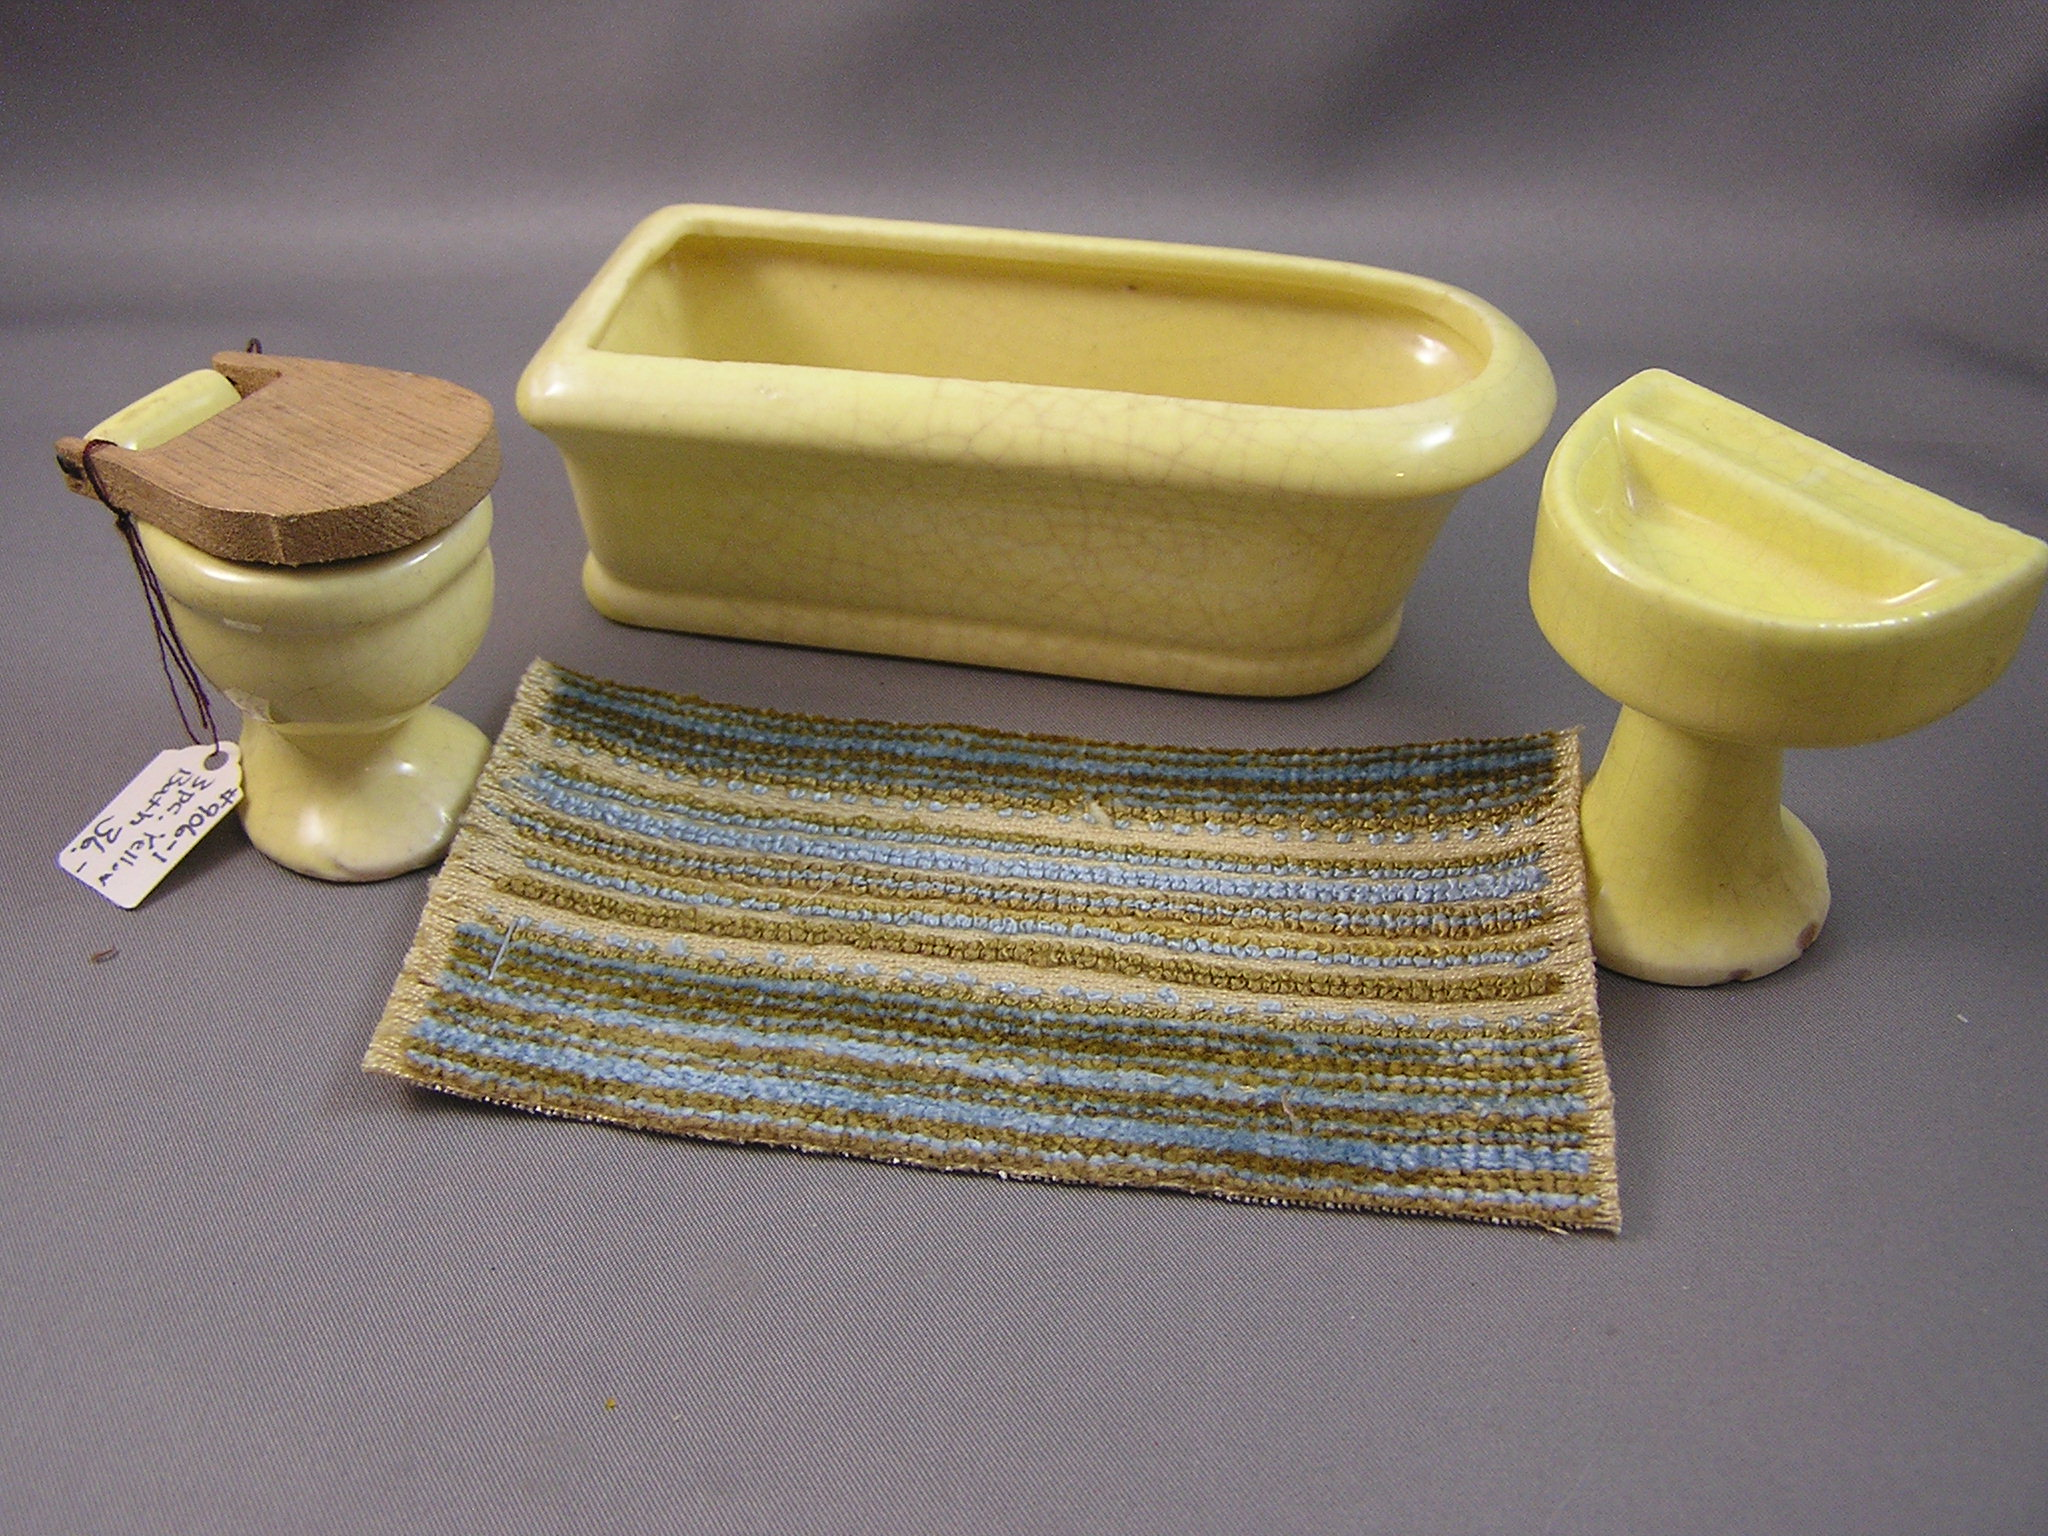 Yellow Porcelain Bathroom Set